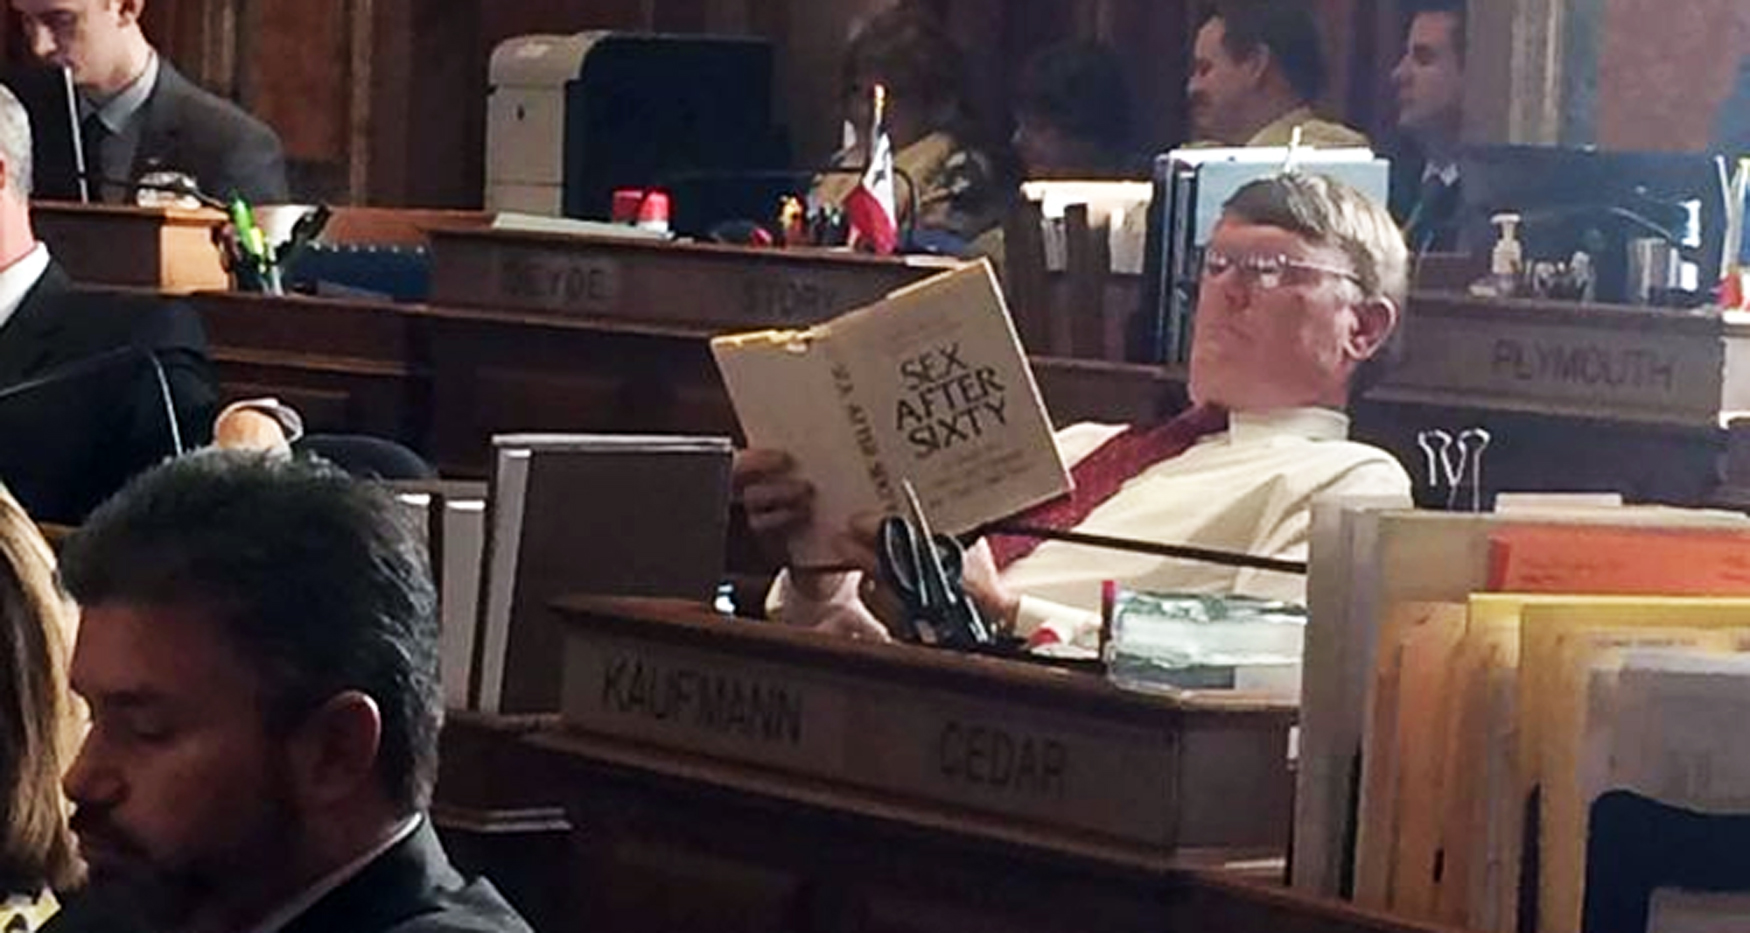 Iowa House Member Reads Sex Book During Floor Debate